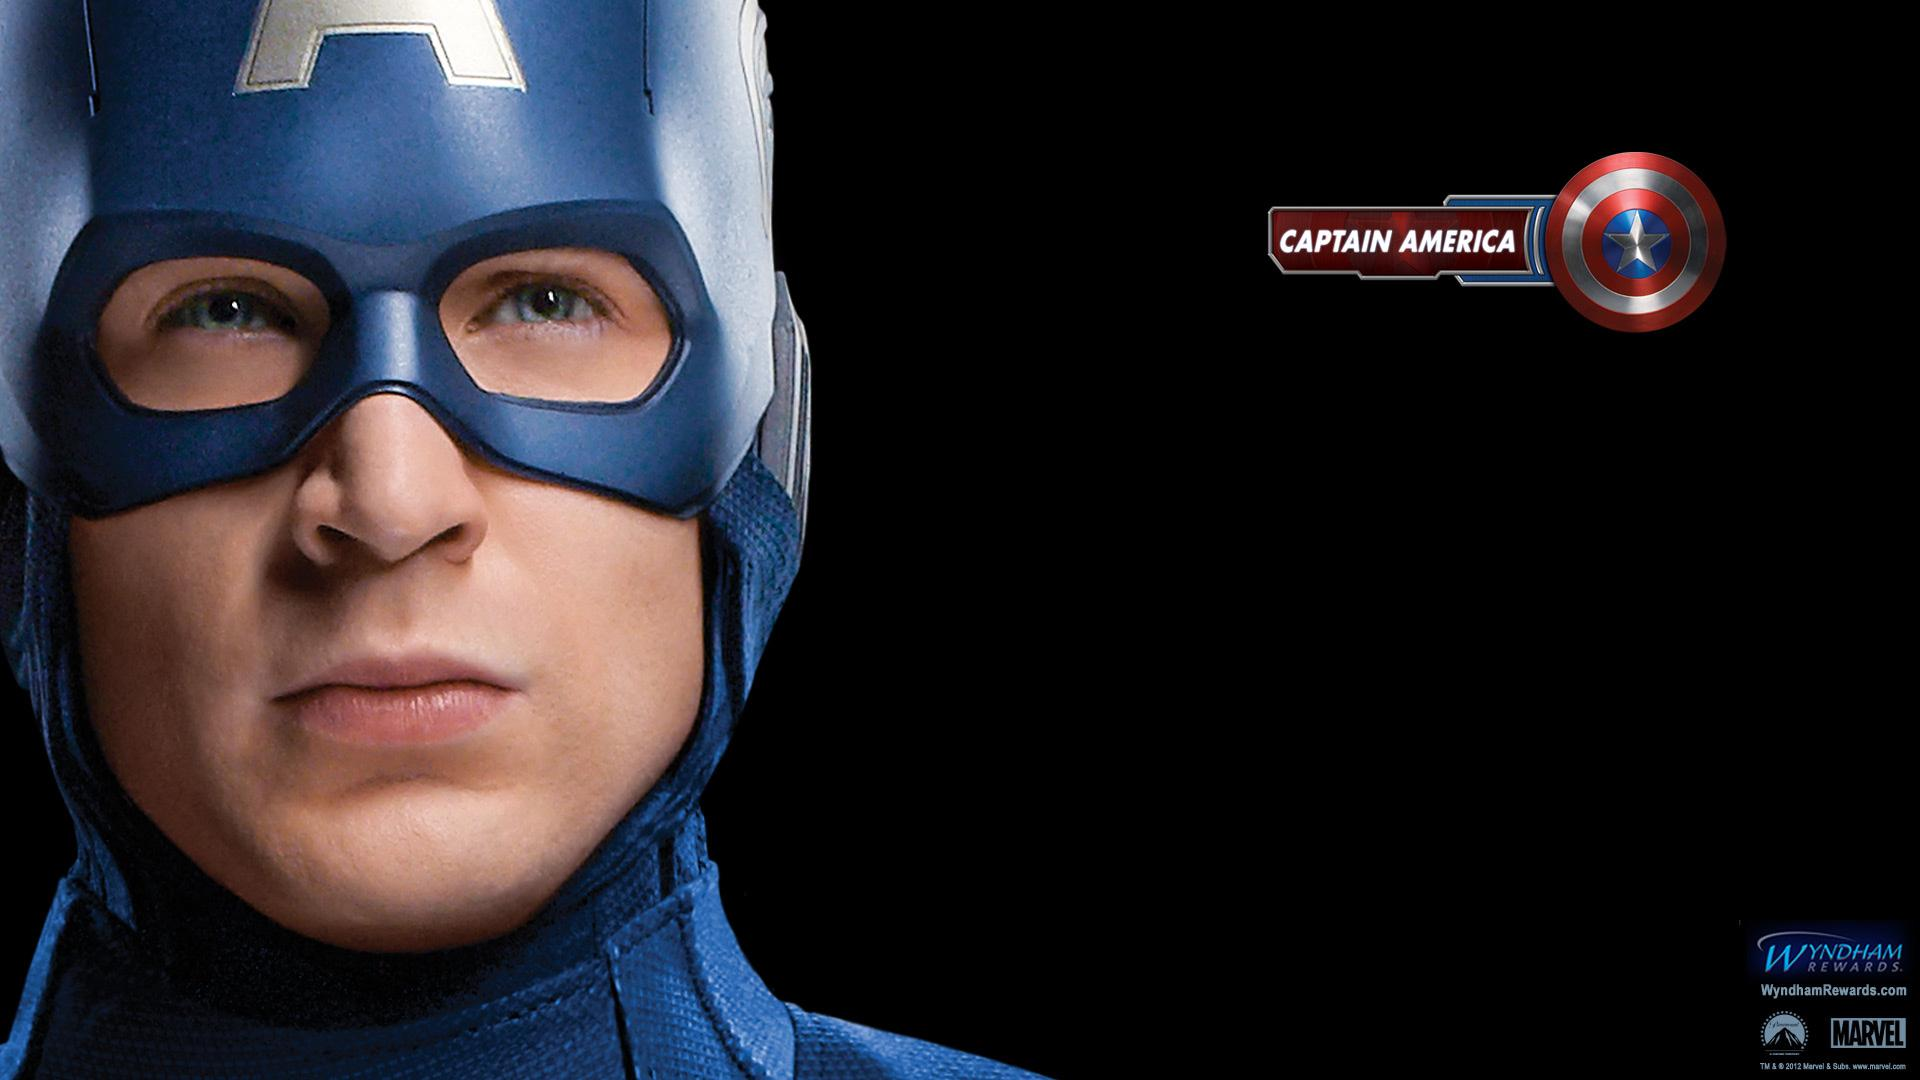 Captain-America-is-the-dullest-Avenger-Description-from-thefocusedfilmographer-com-I-searche-wallpaper-wp3801704